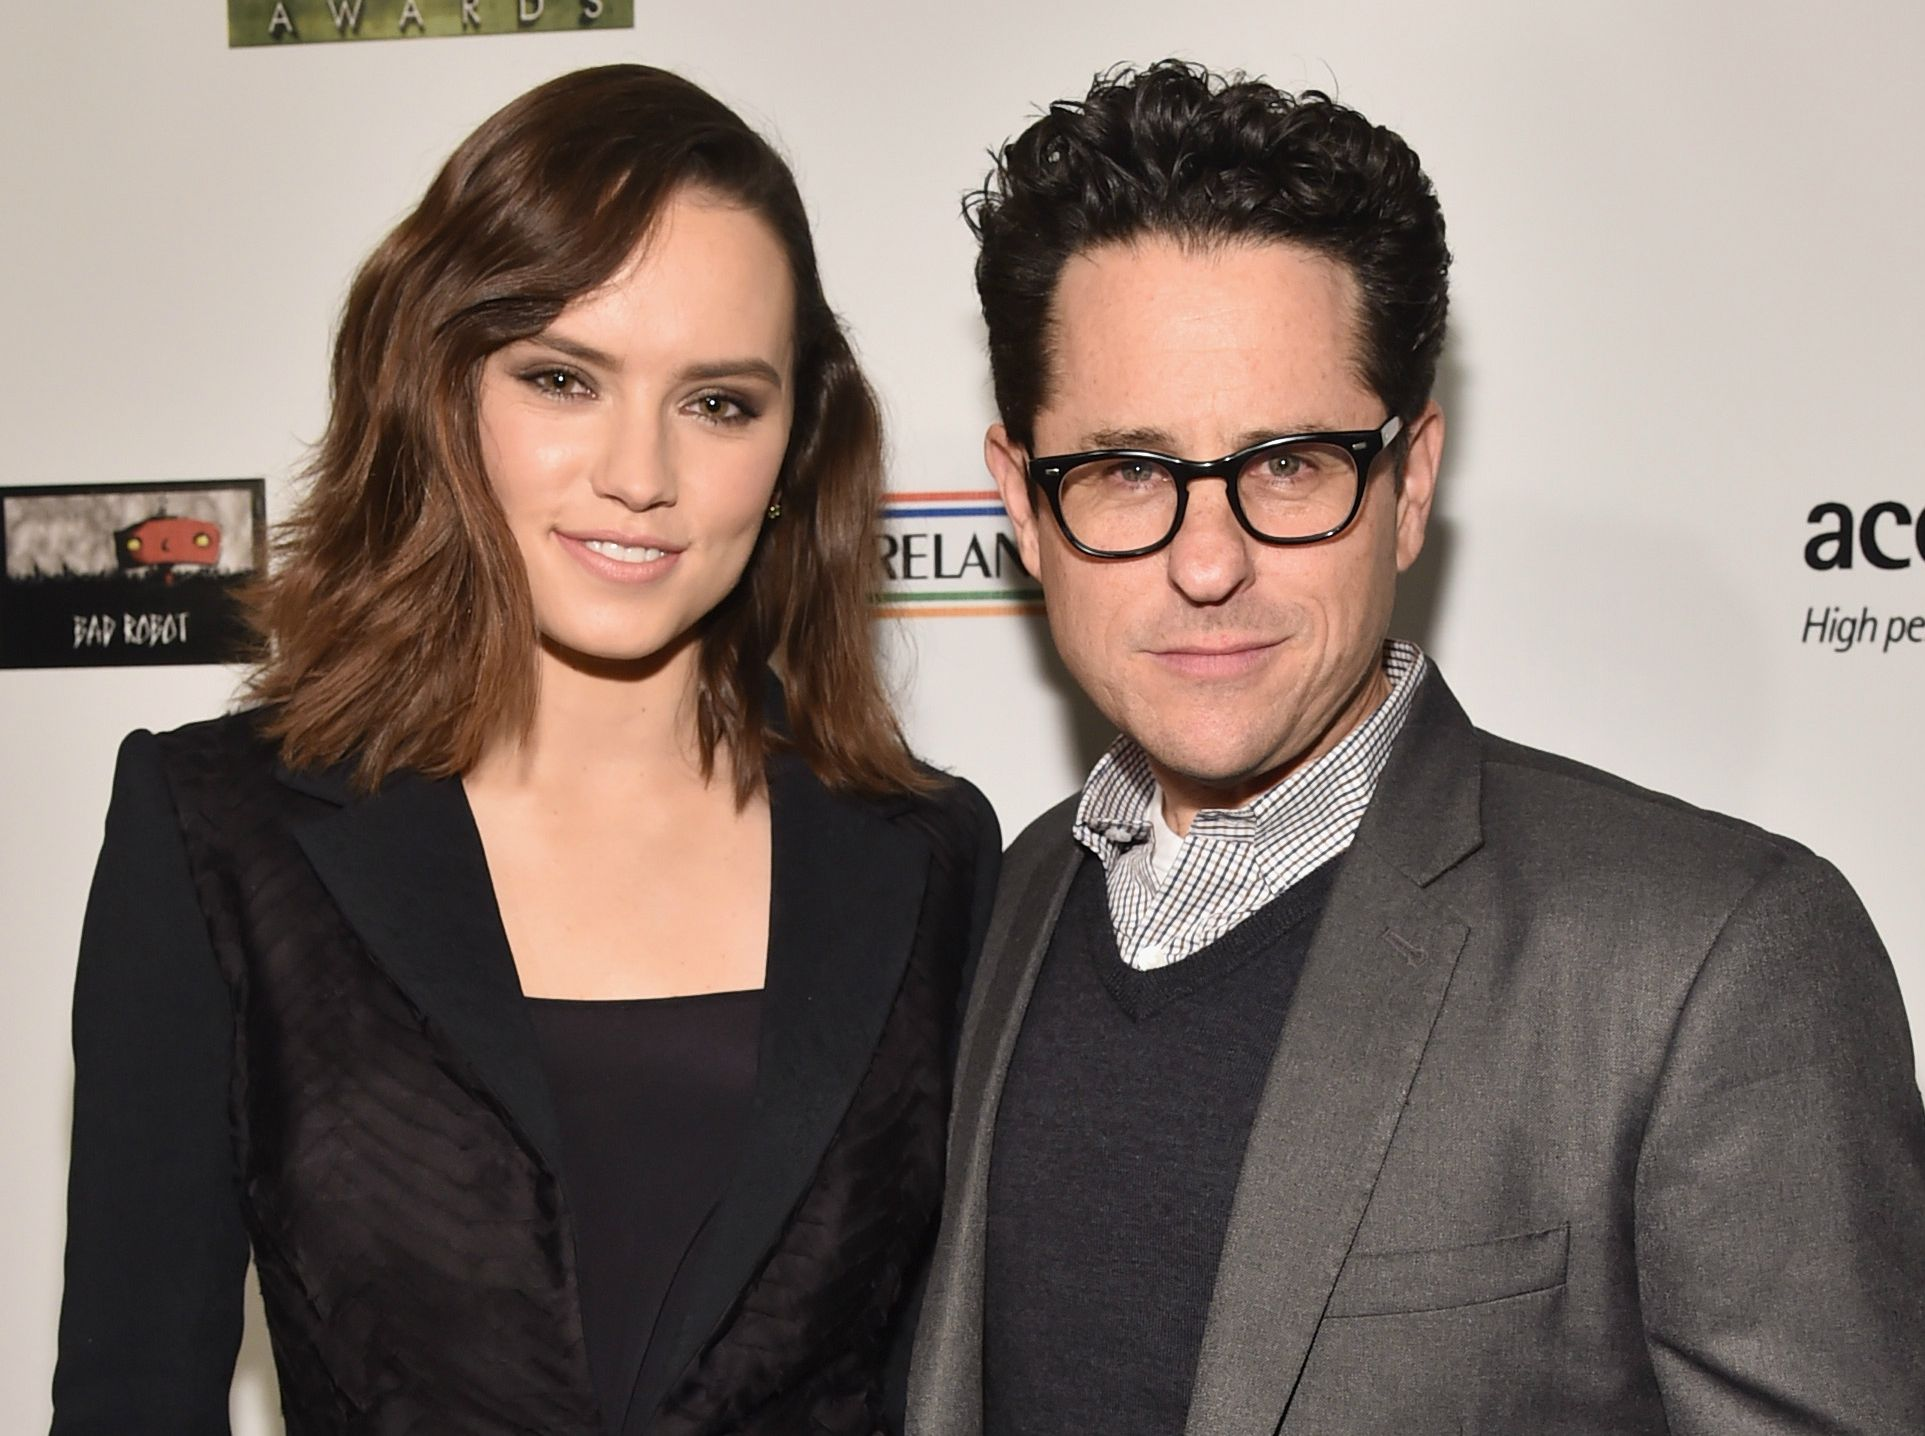 J.J. Abrams and Daisy Ridley